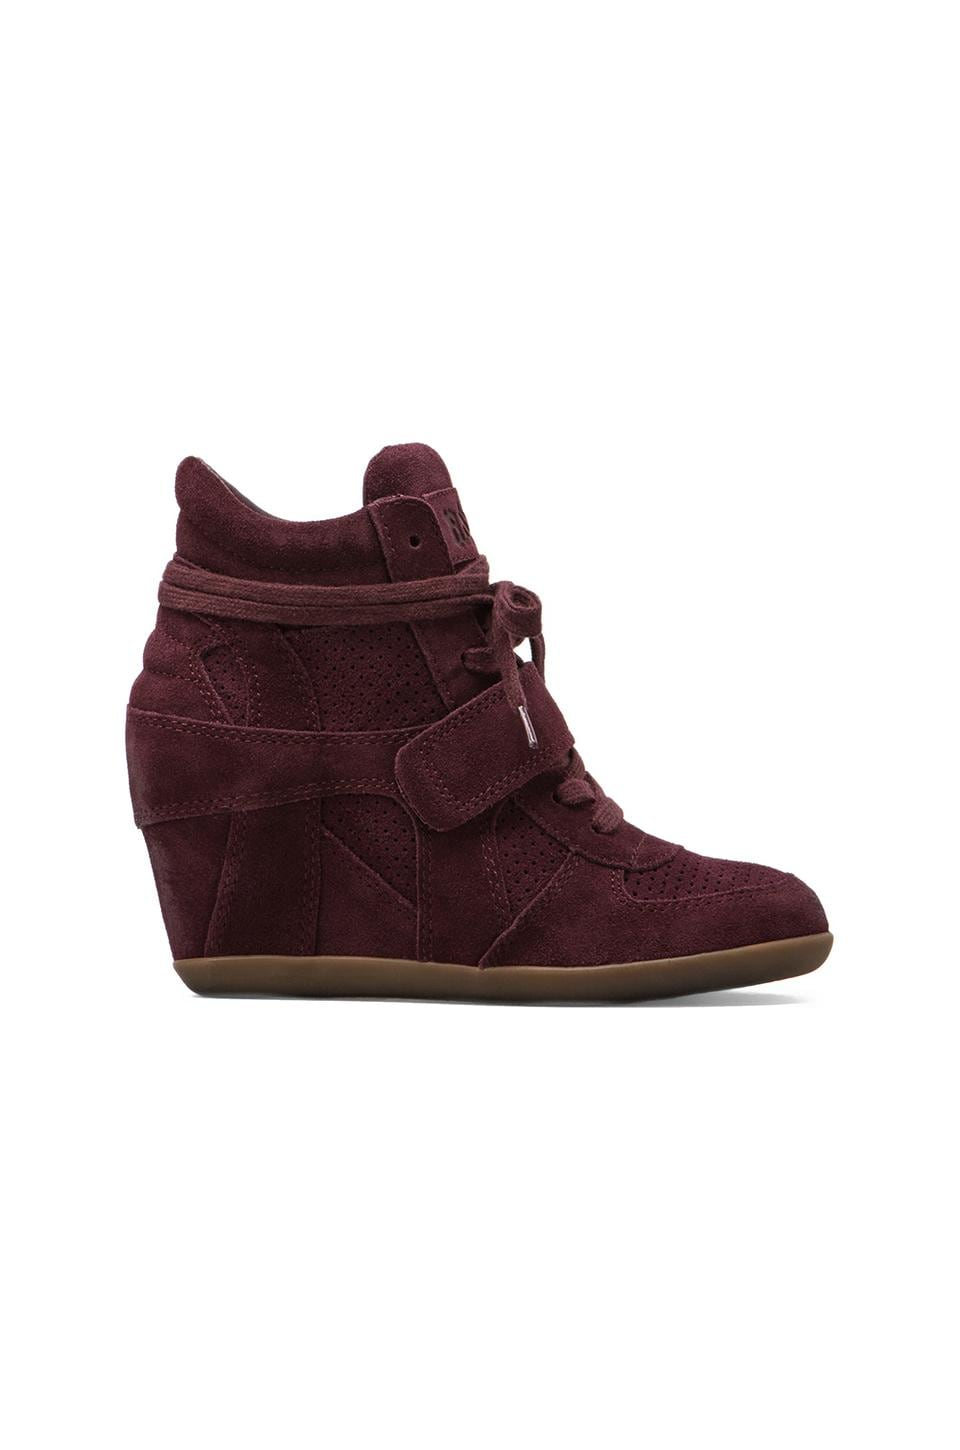 Ash Bowie Wedge Sneaker in Bordo